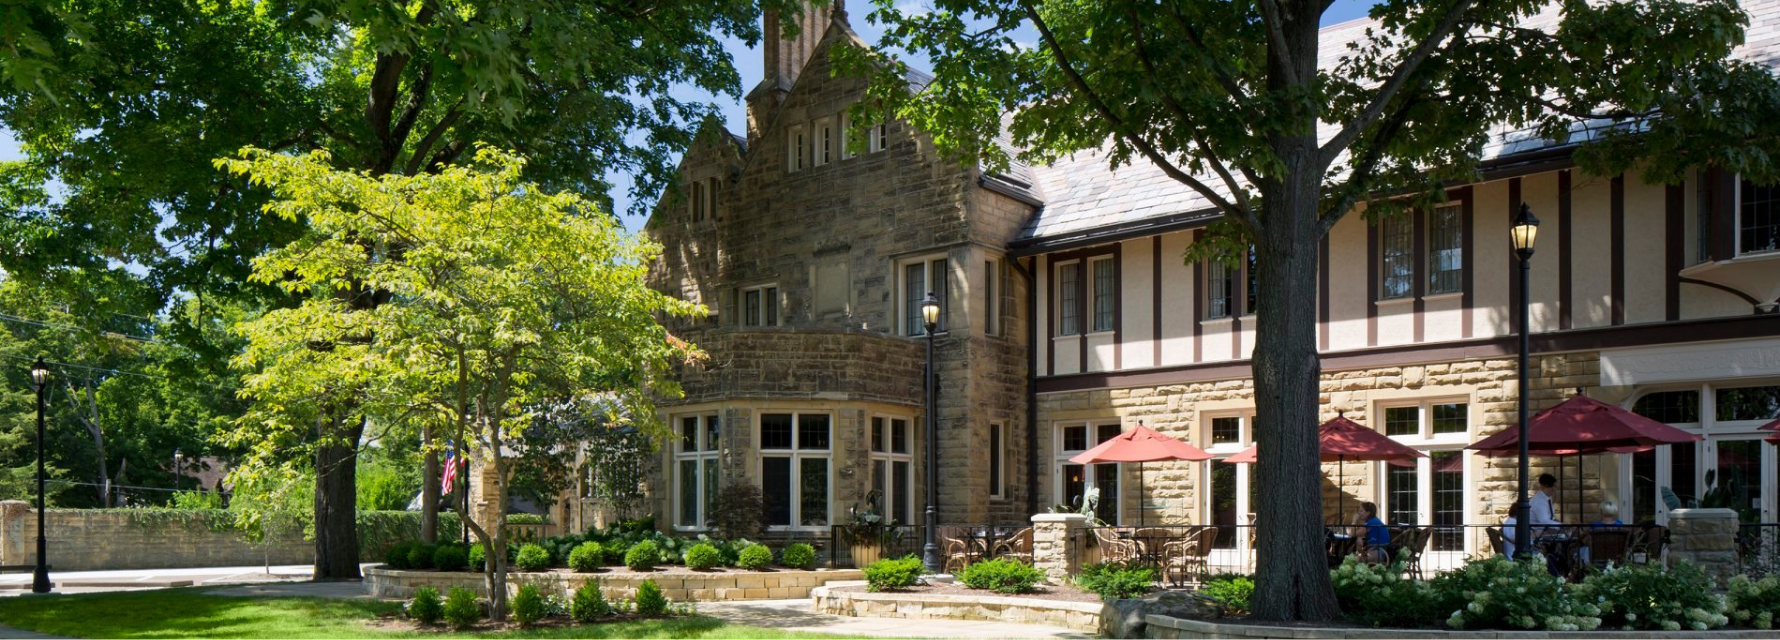 stone hotel with outdoor dining